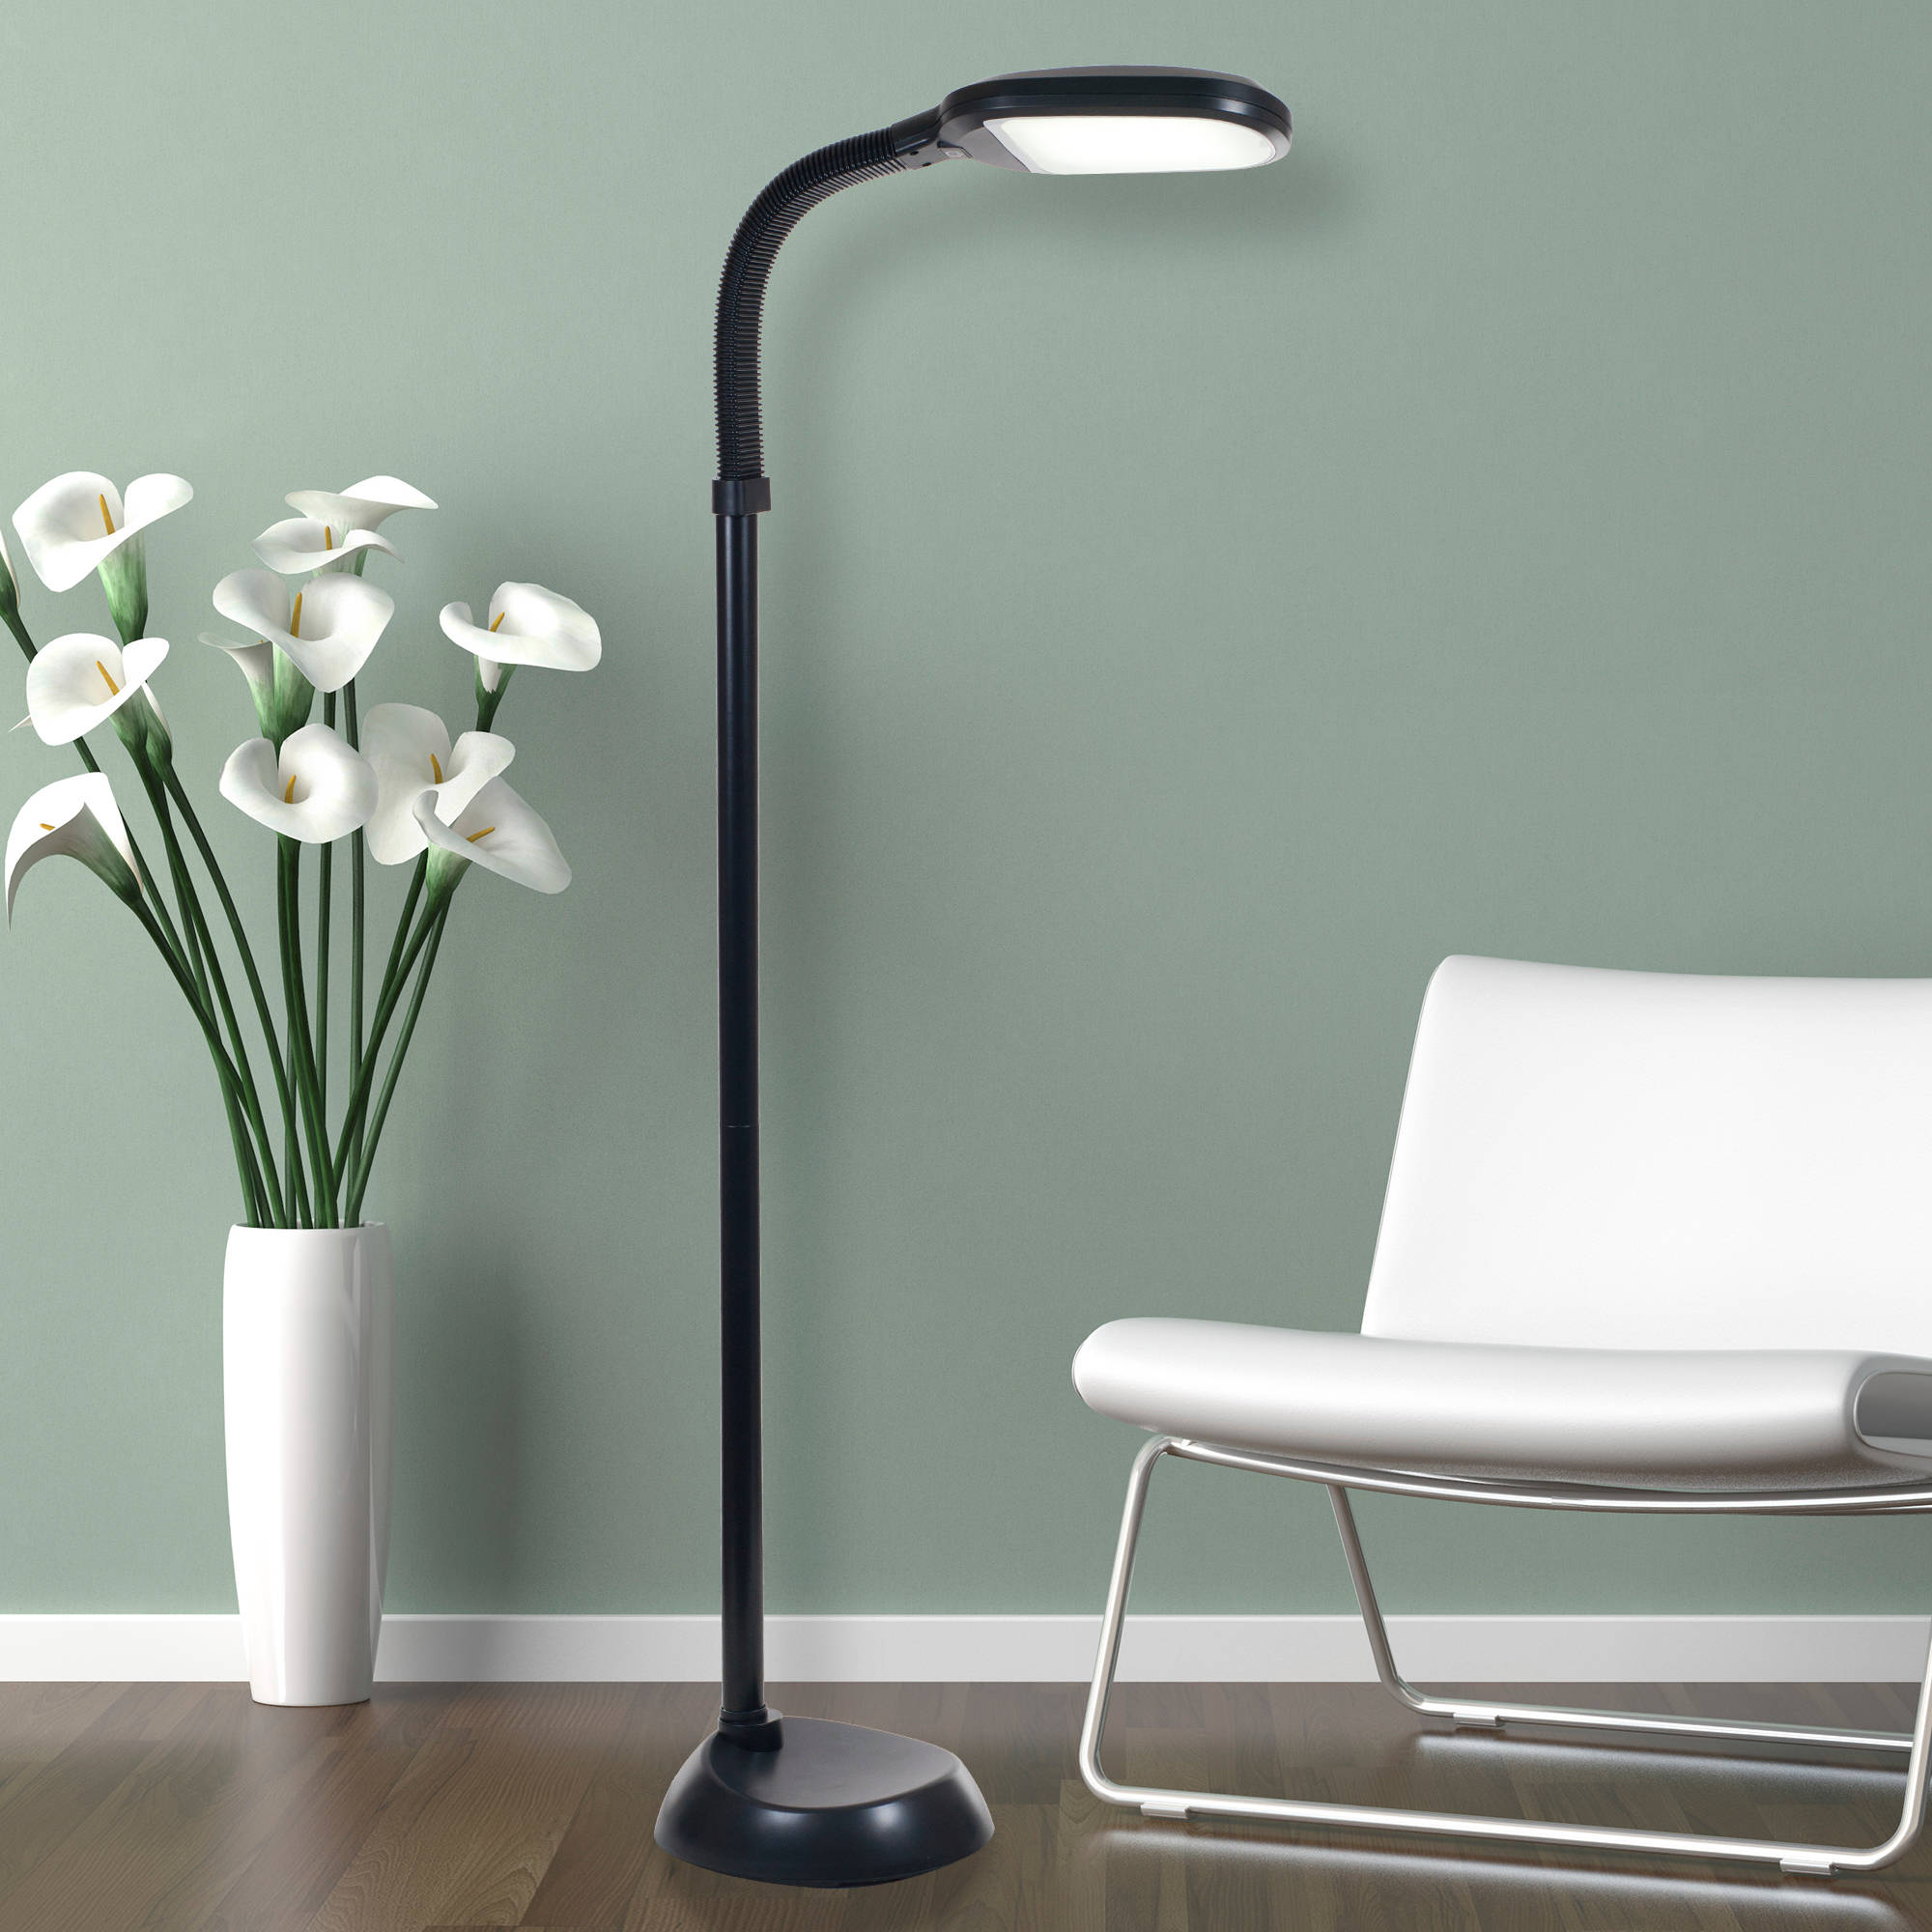 Mainstays black shelf floor lamp with white shade on off cfl bulb included walmart com